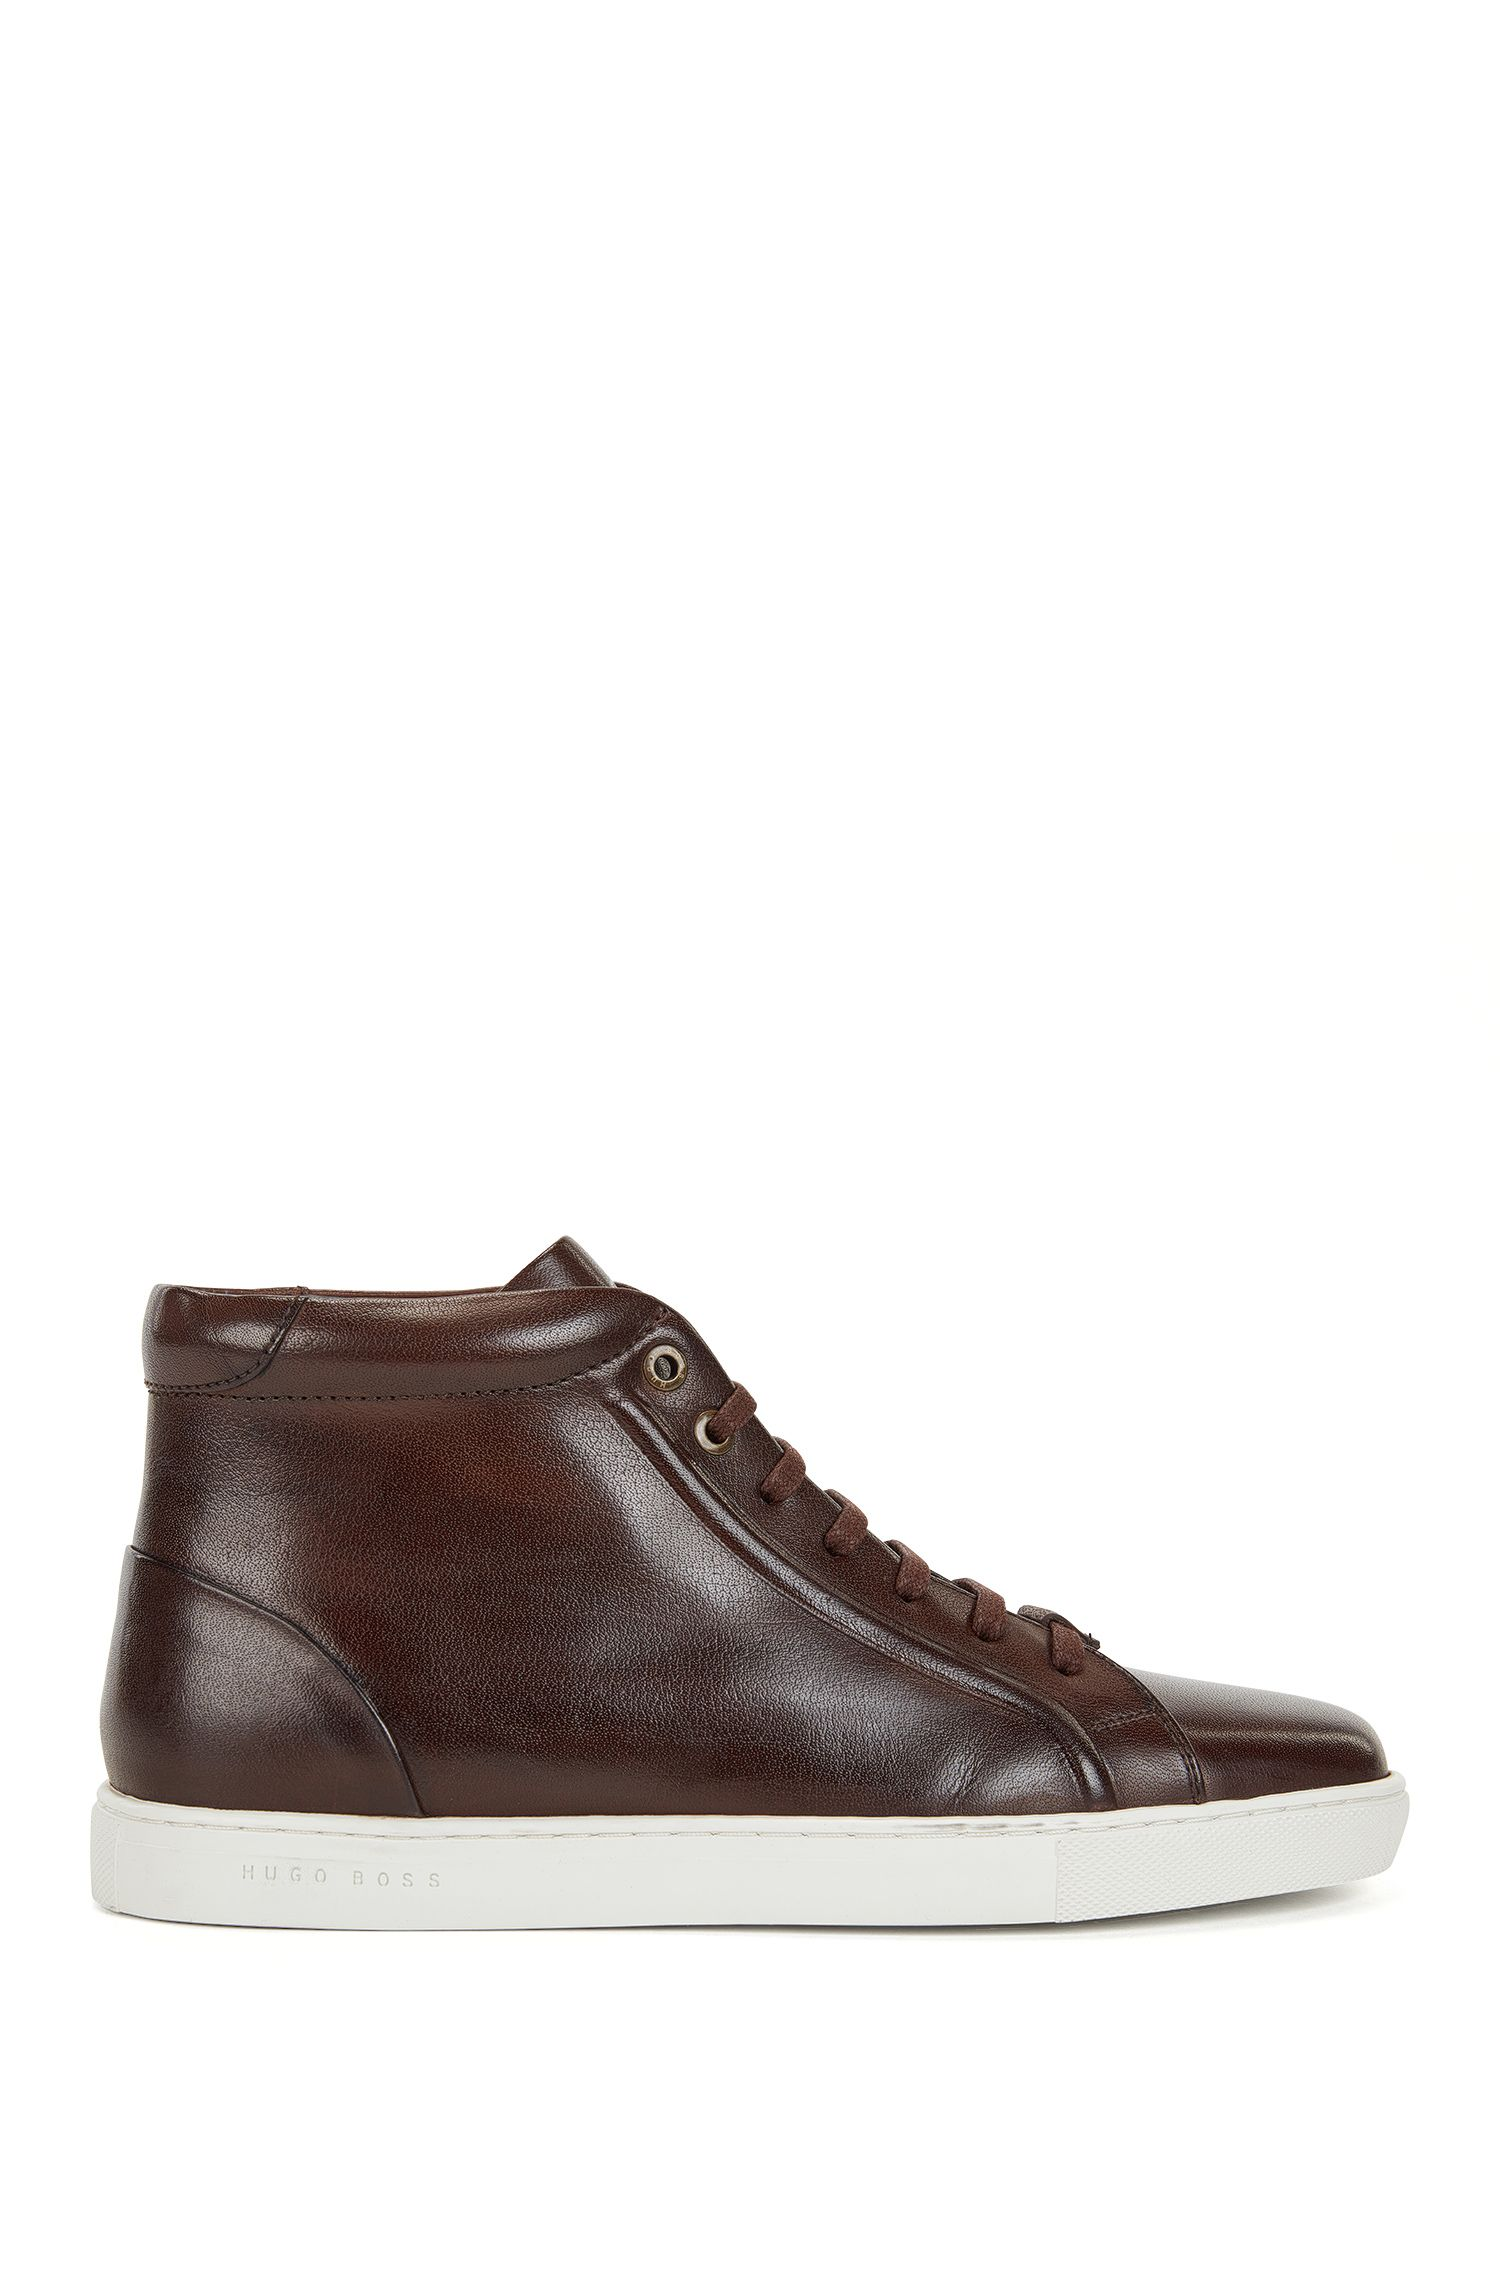 Buffalo Leather High-Top Sneaker | Tribute Hito Bu